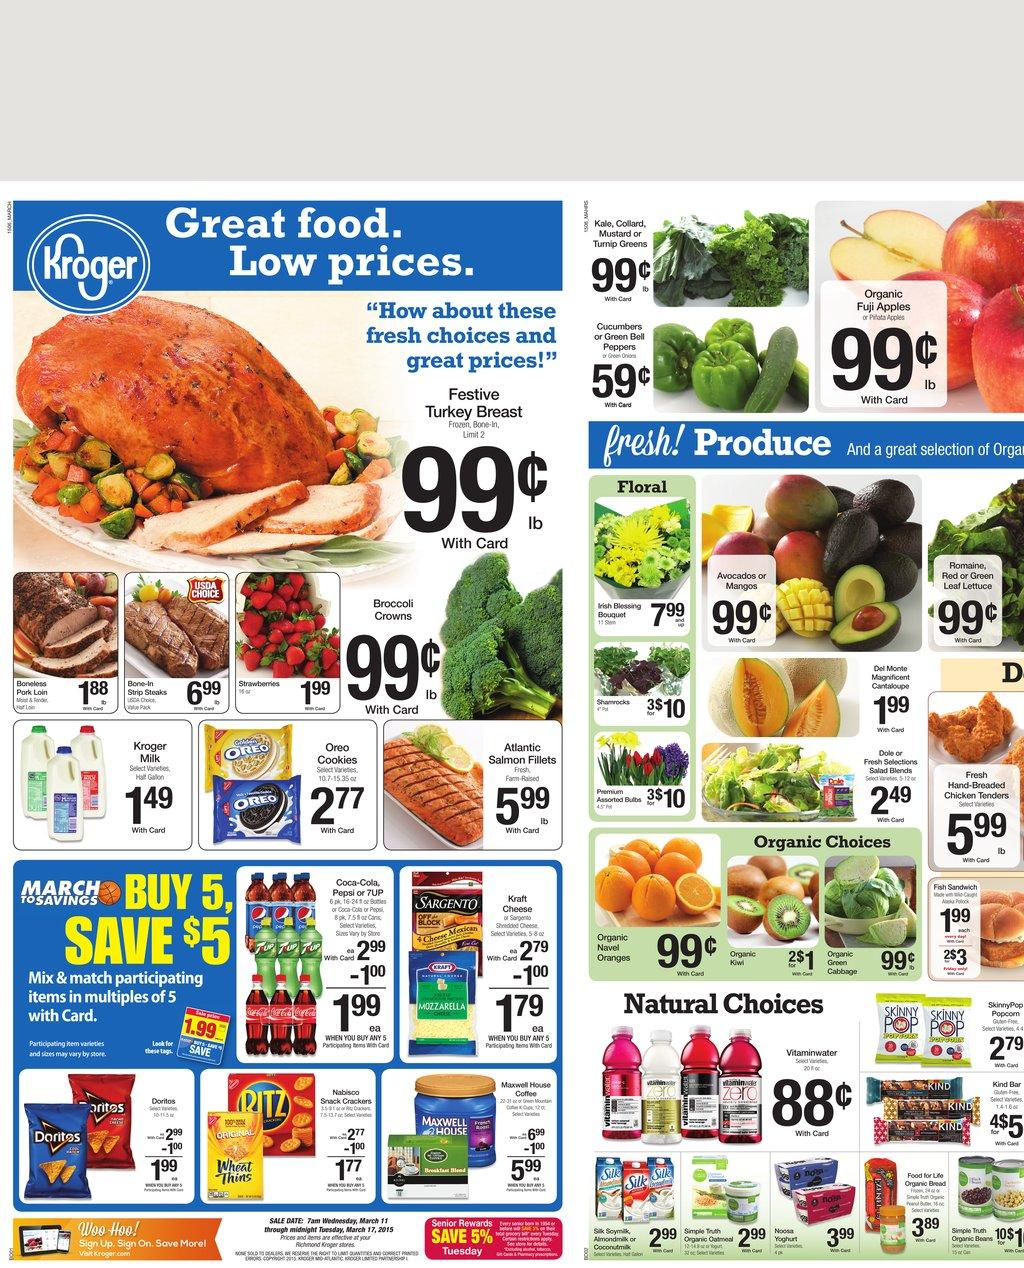 Kroger Weekly Ad Preview 3/11 2015